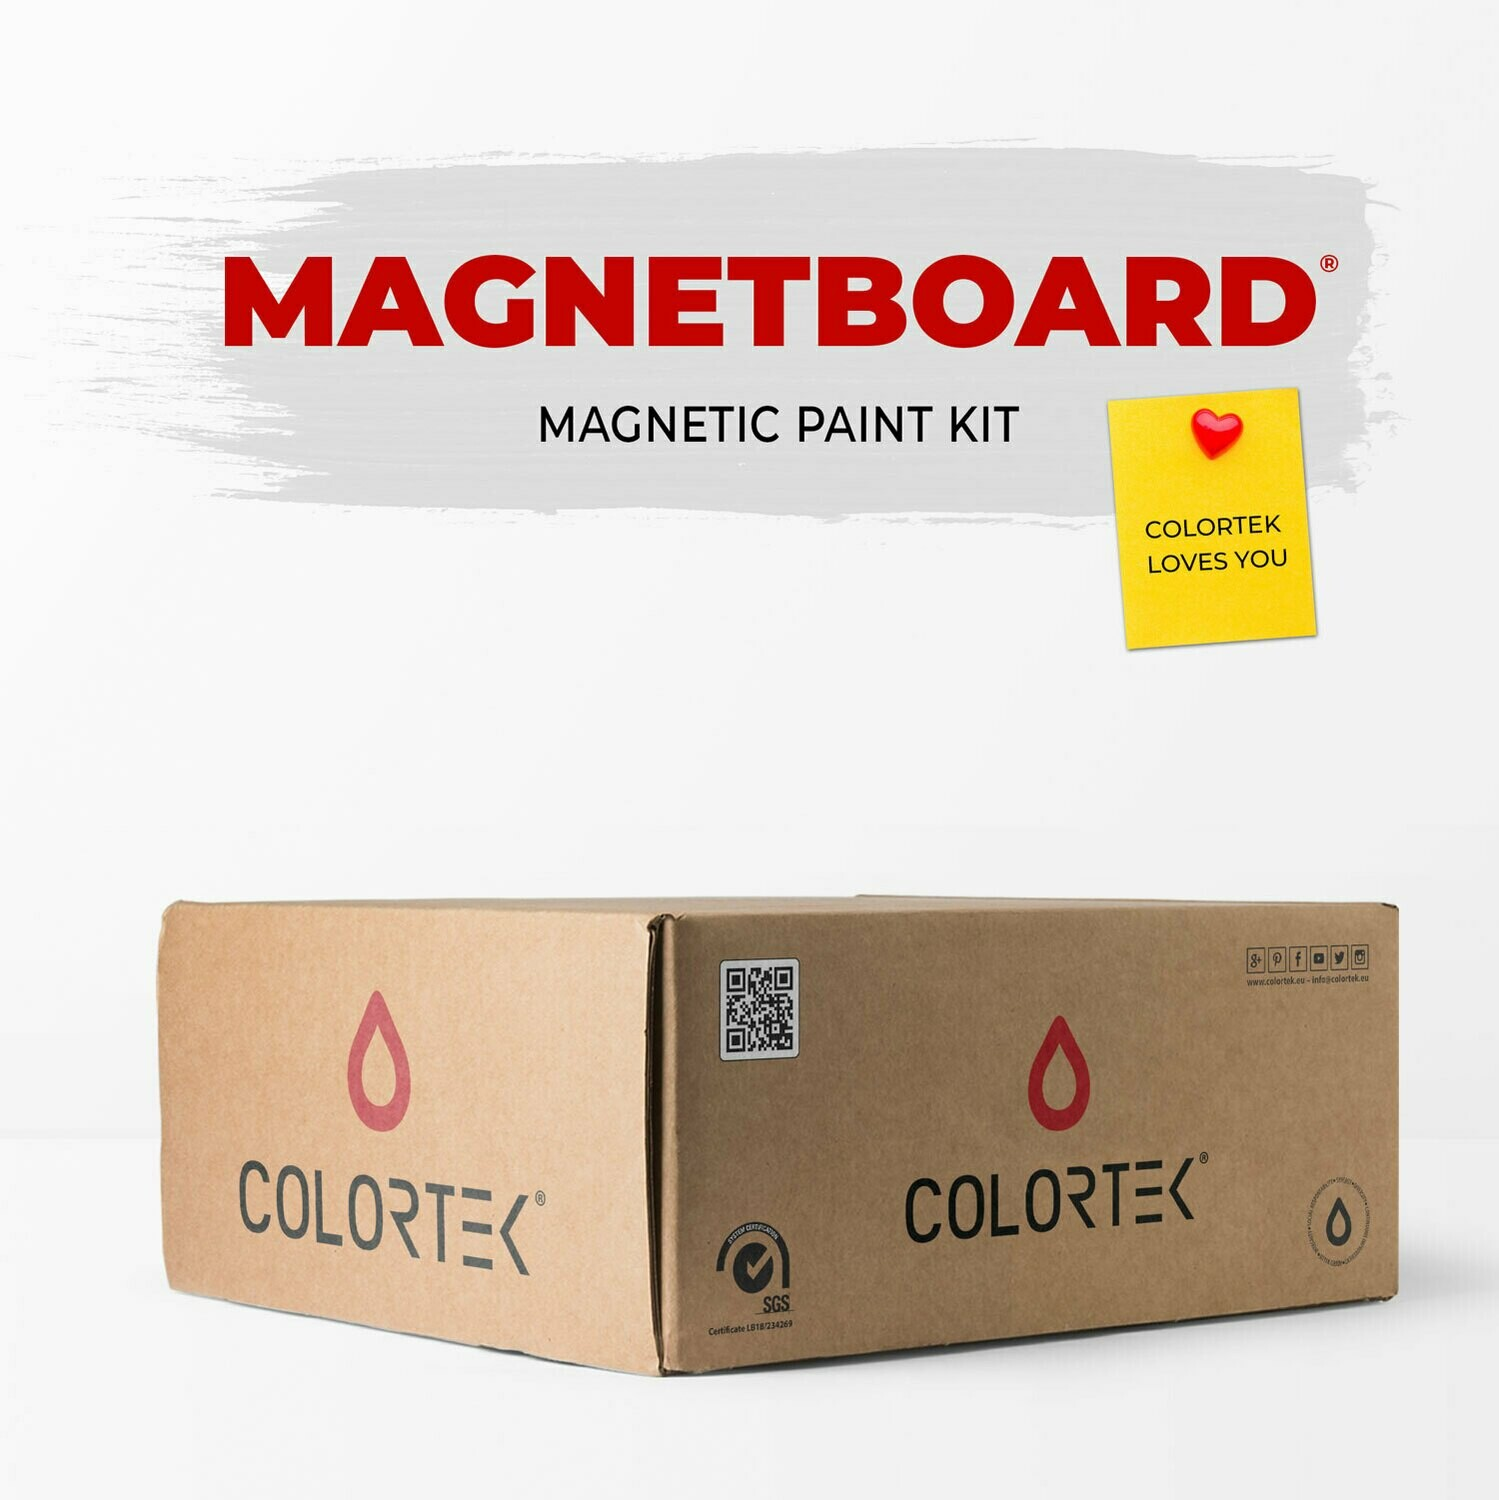 MagnetBoard - Magnetic Paint Kit for 3 sqm